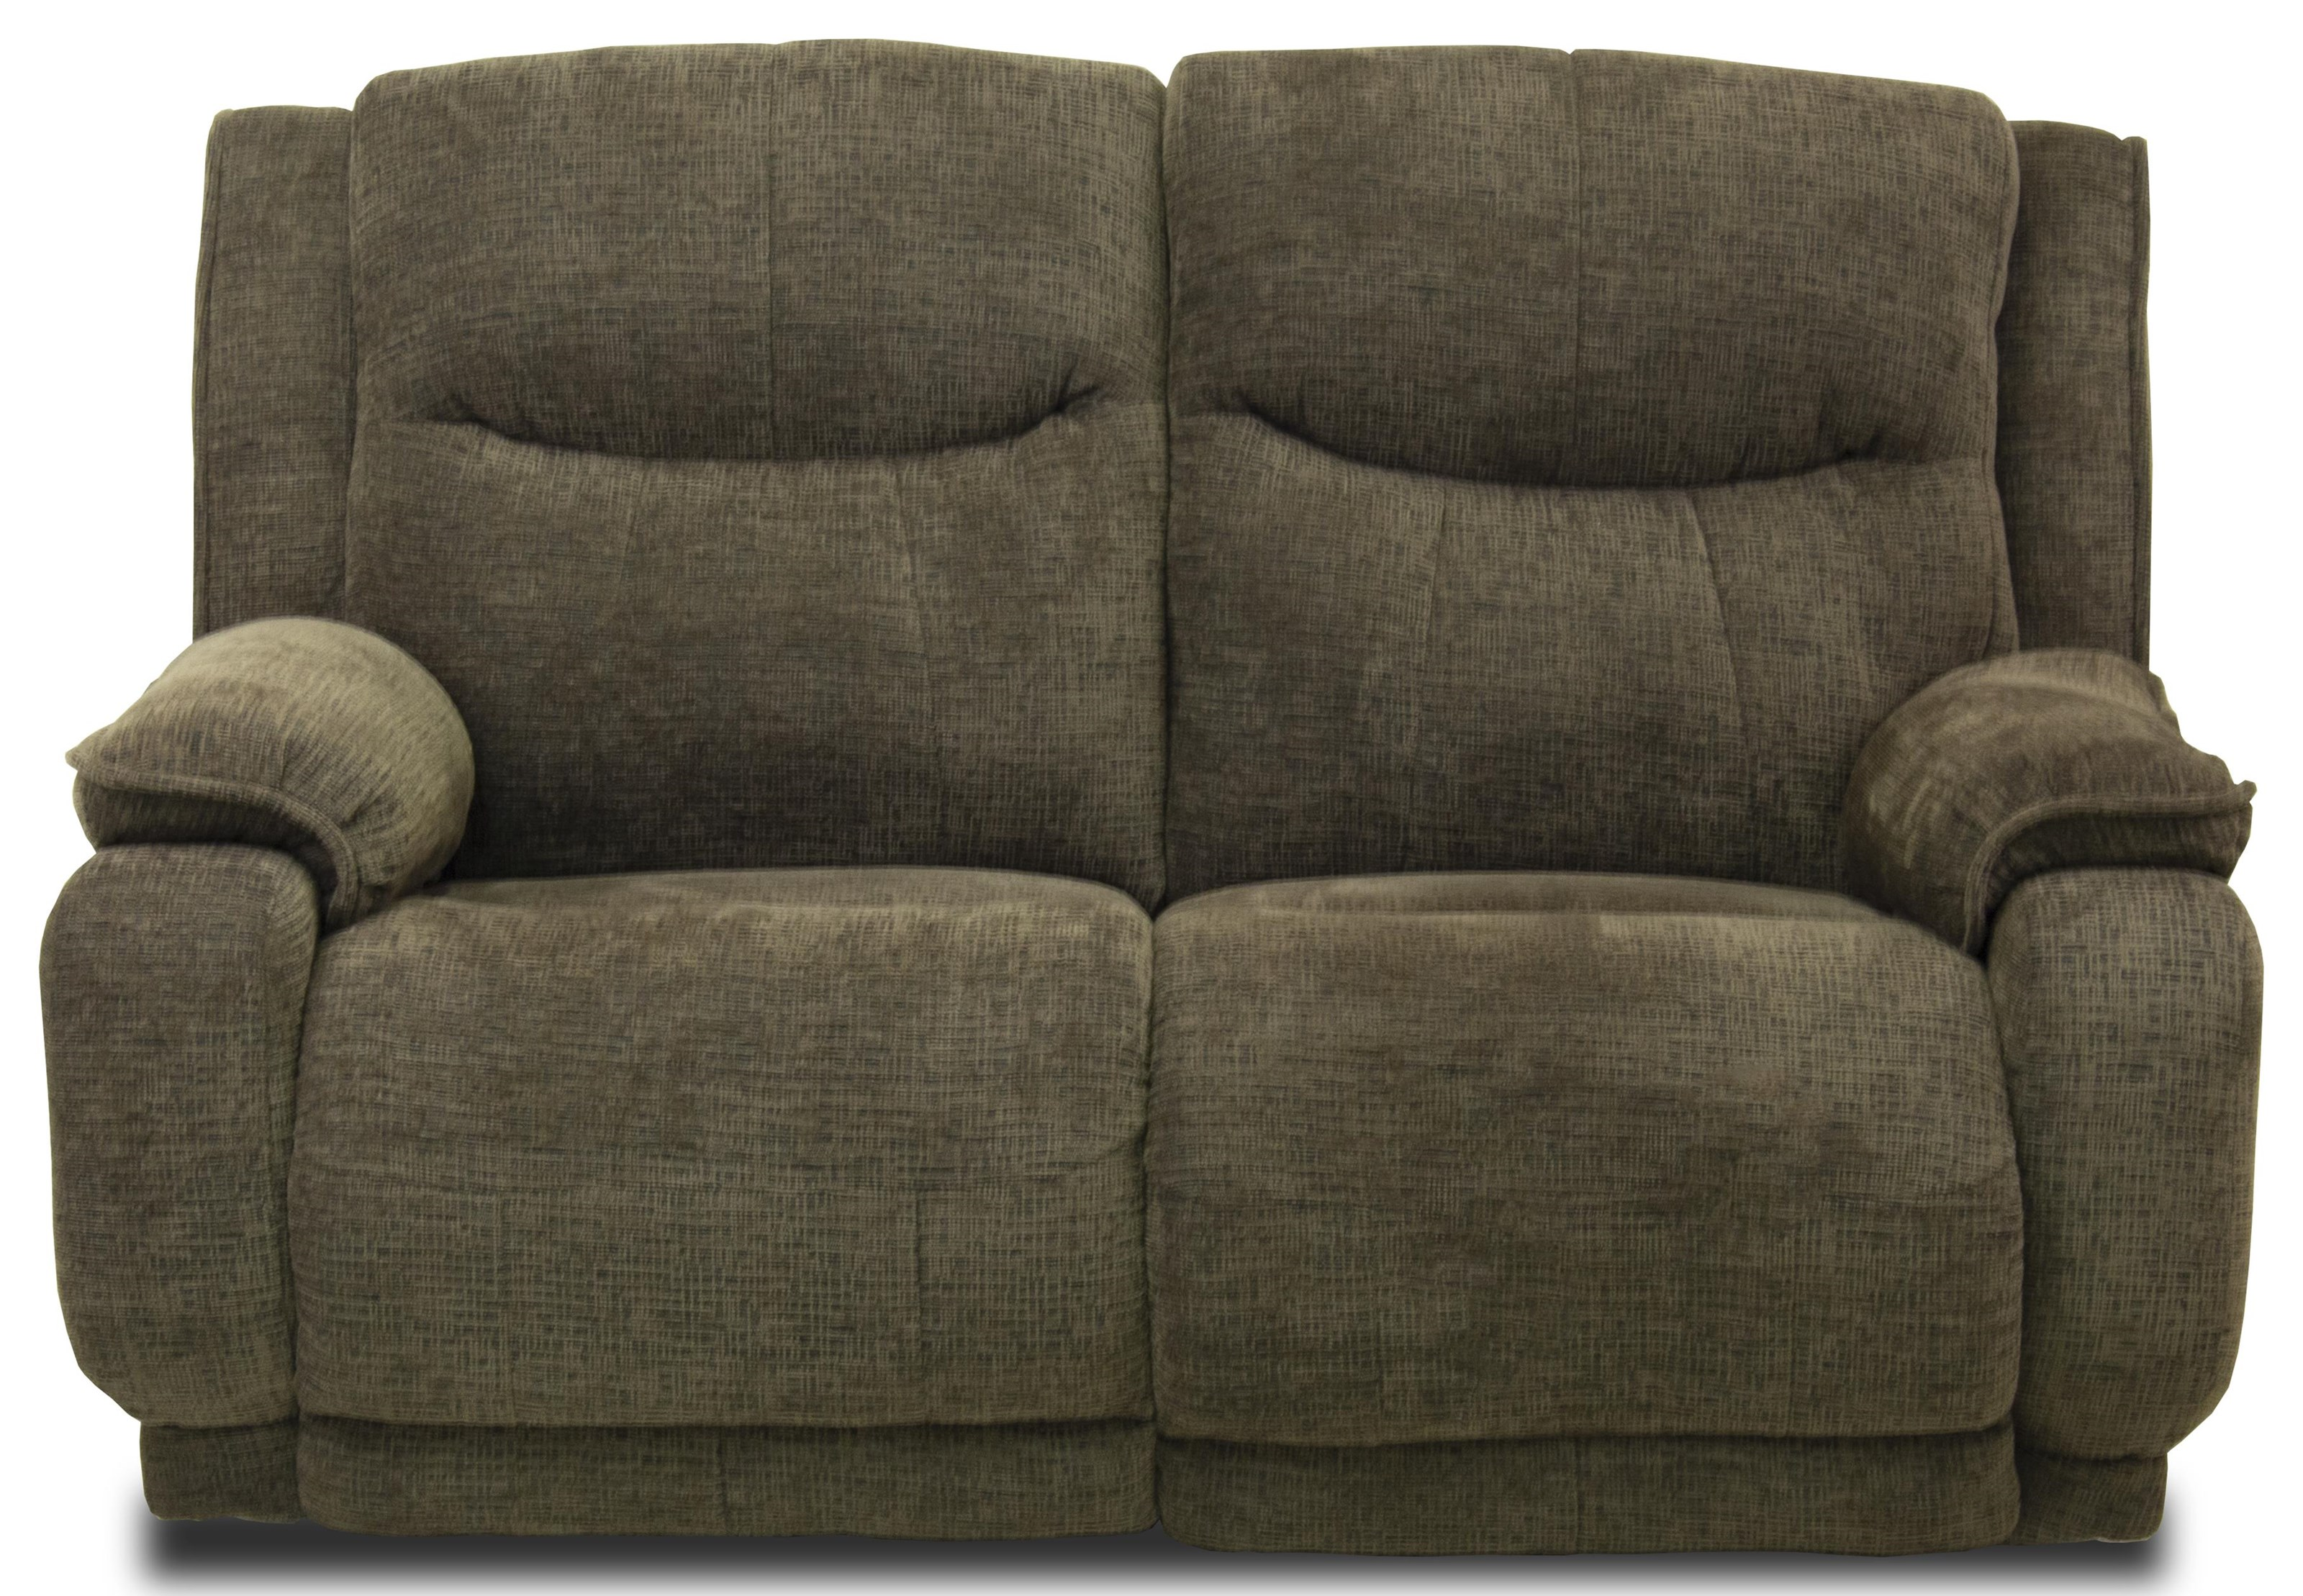 Stupendous Velocity Reclining Loveseat Ibusinesslaw Wood Chair Design Ideas Ibusinesslaworg